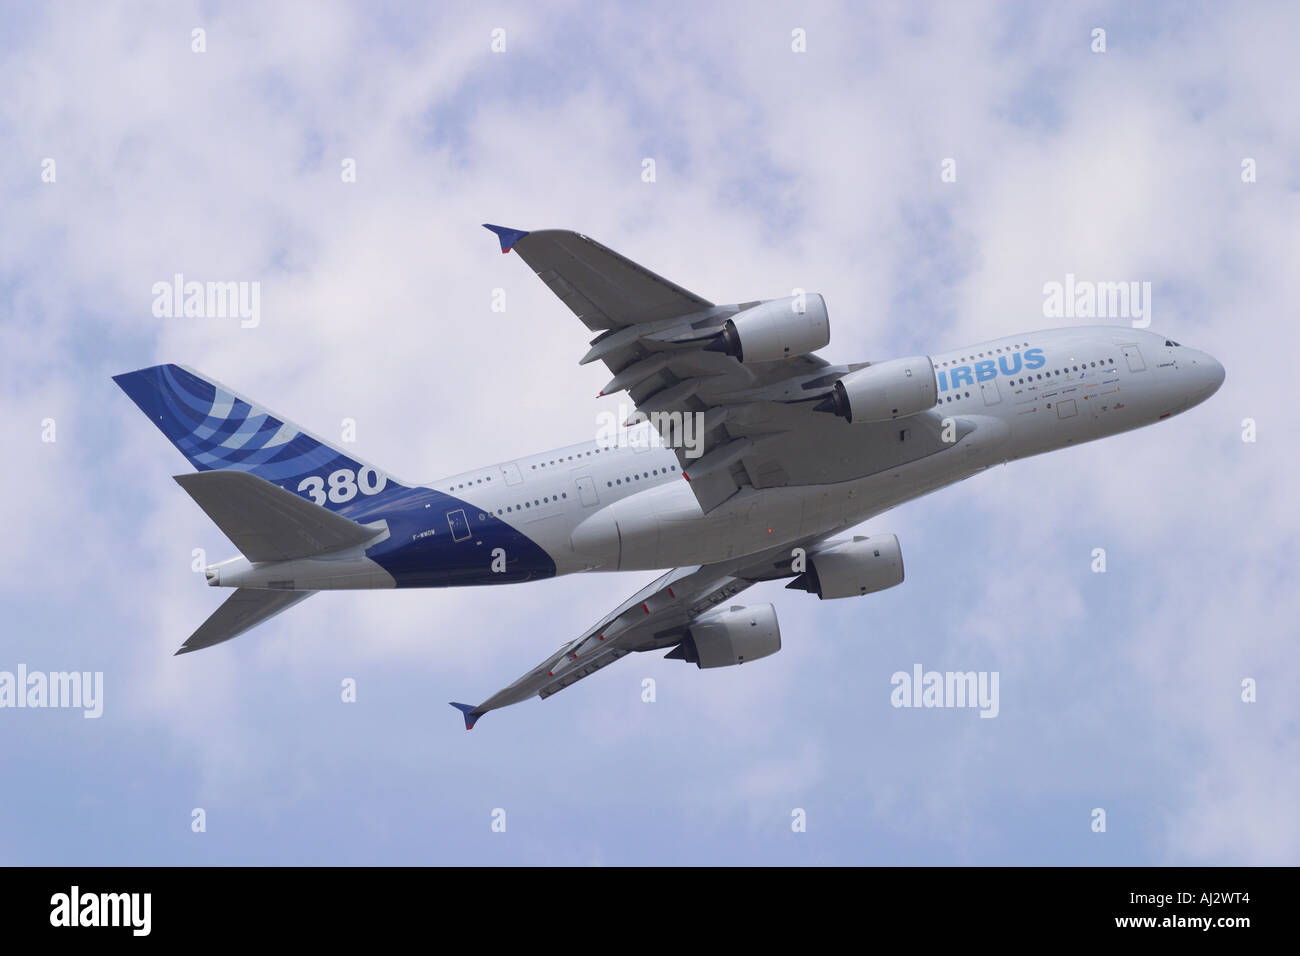 Airbus A380 superjumbo new commercial passenger airliner in flight - Stock Image